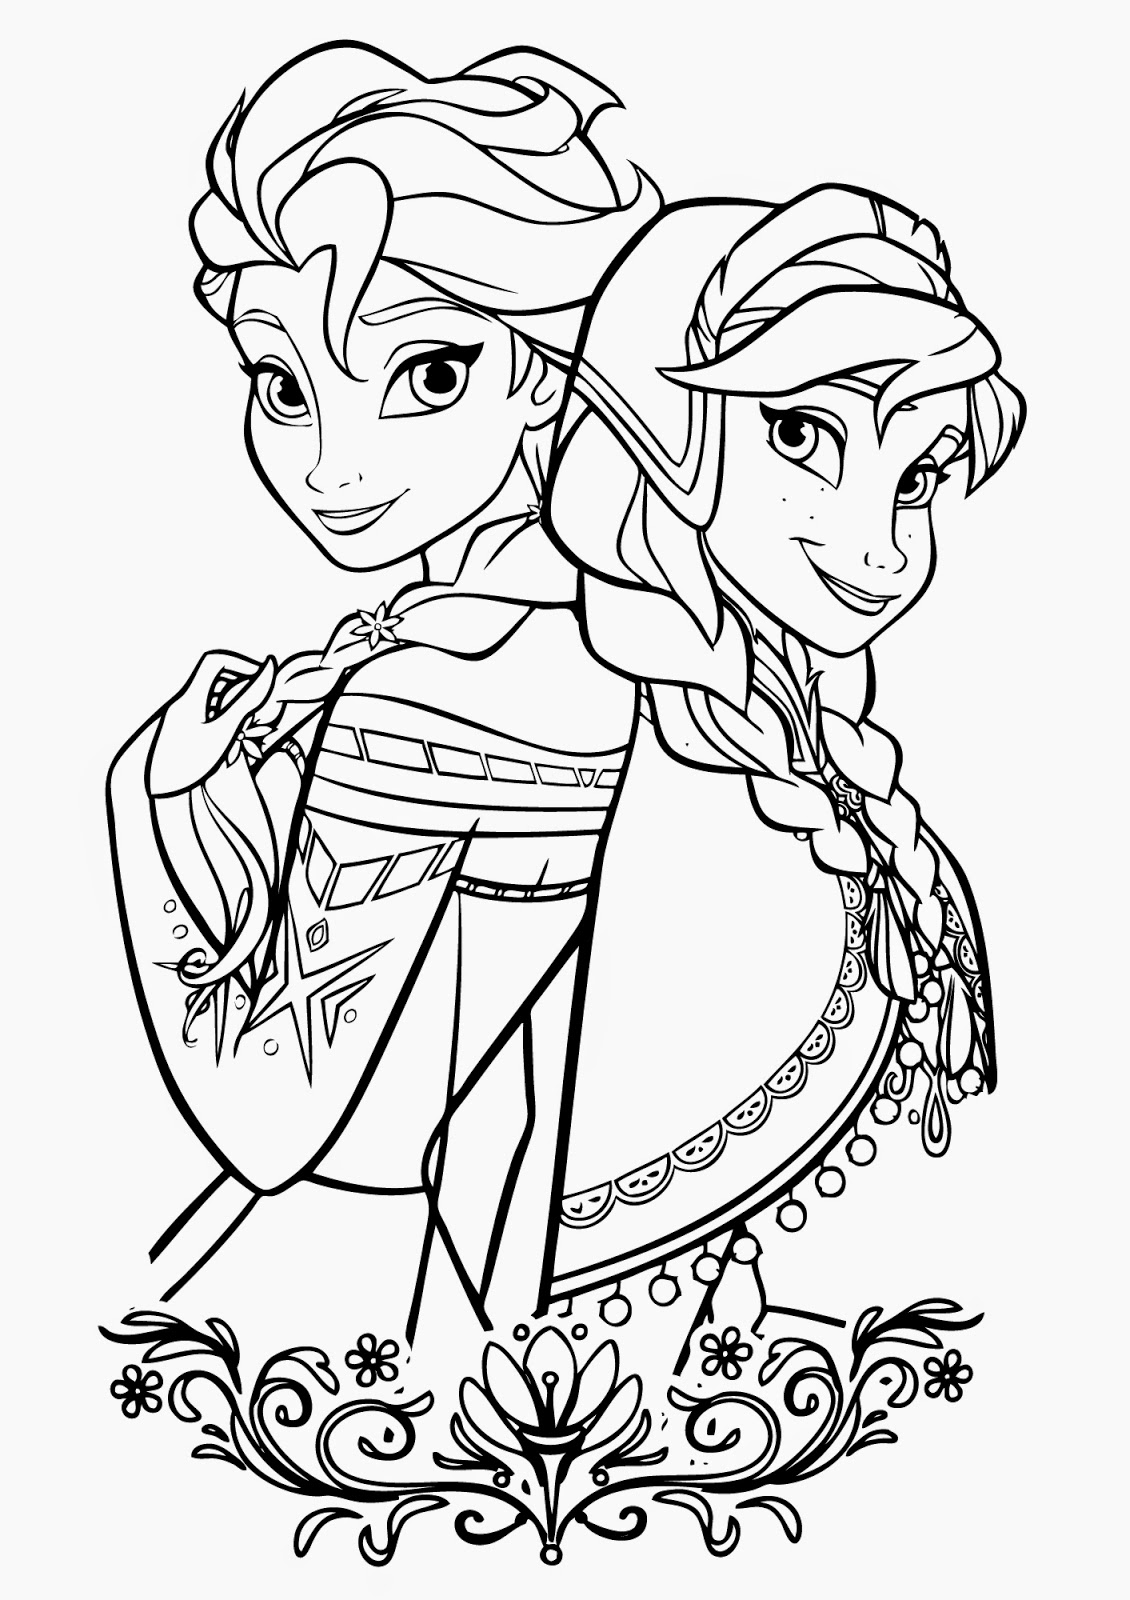 free online coloring pages to print - free printable elsa coloring pages for kids best